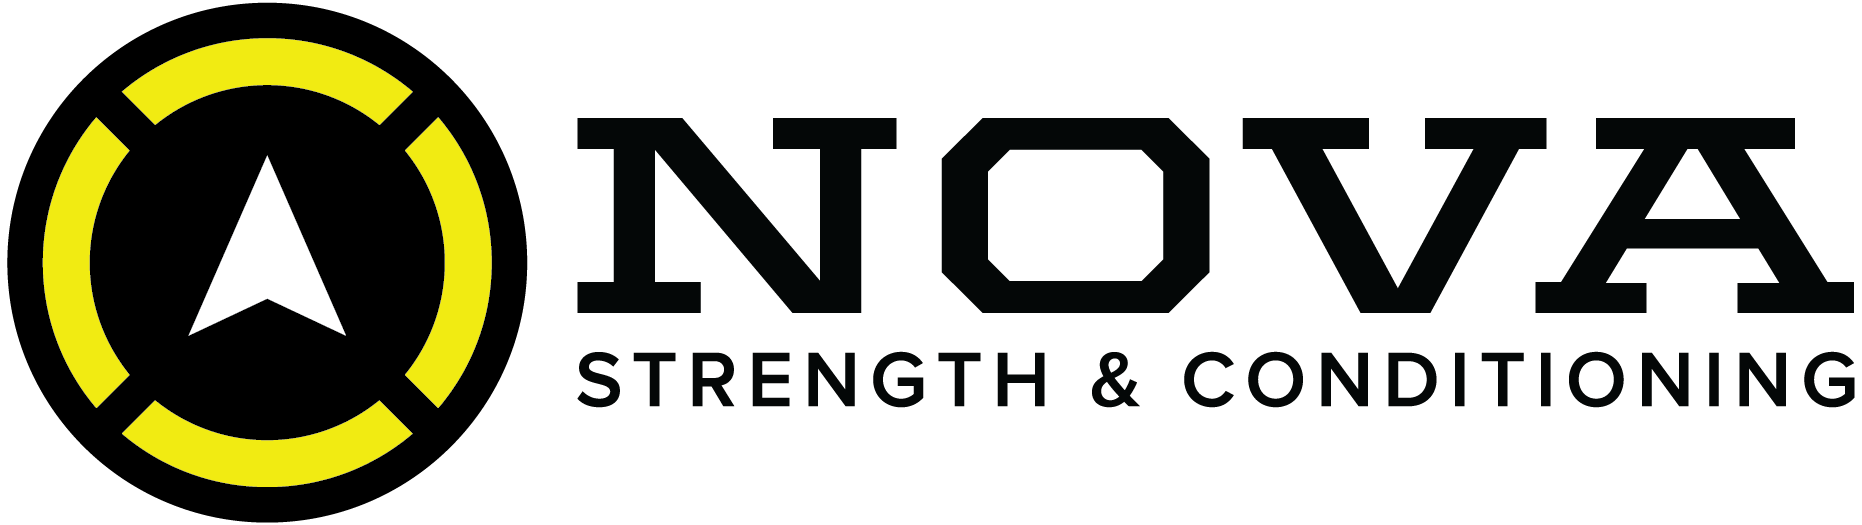 NOVA Strength and Conditioning | Home of NOVA Nutrition logo